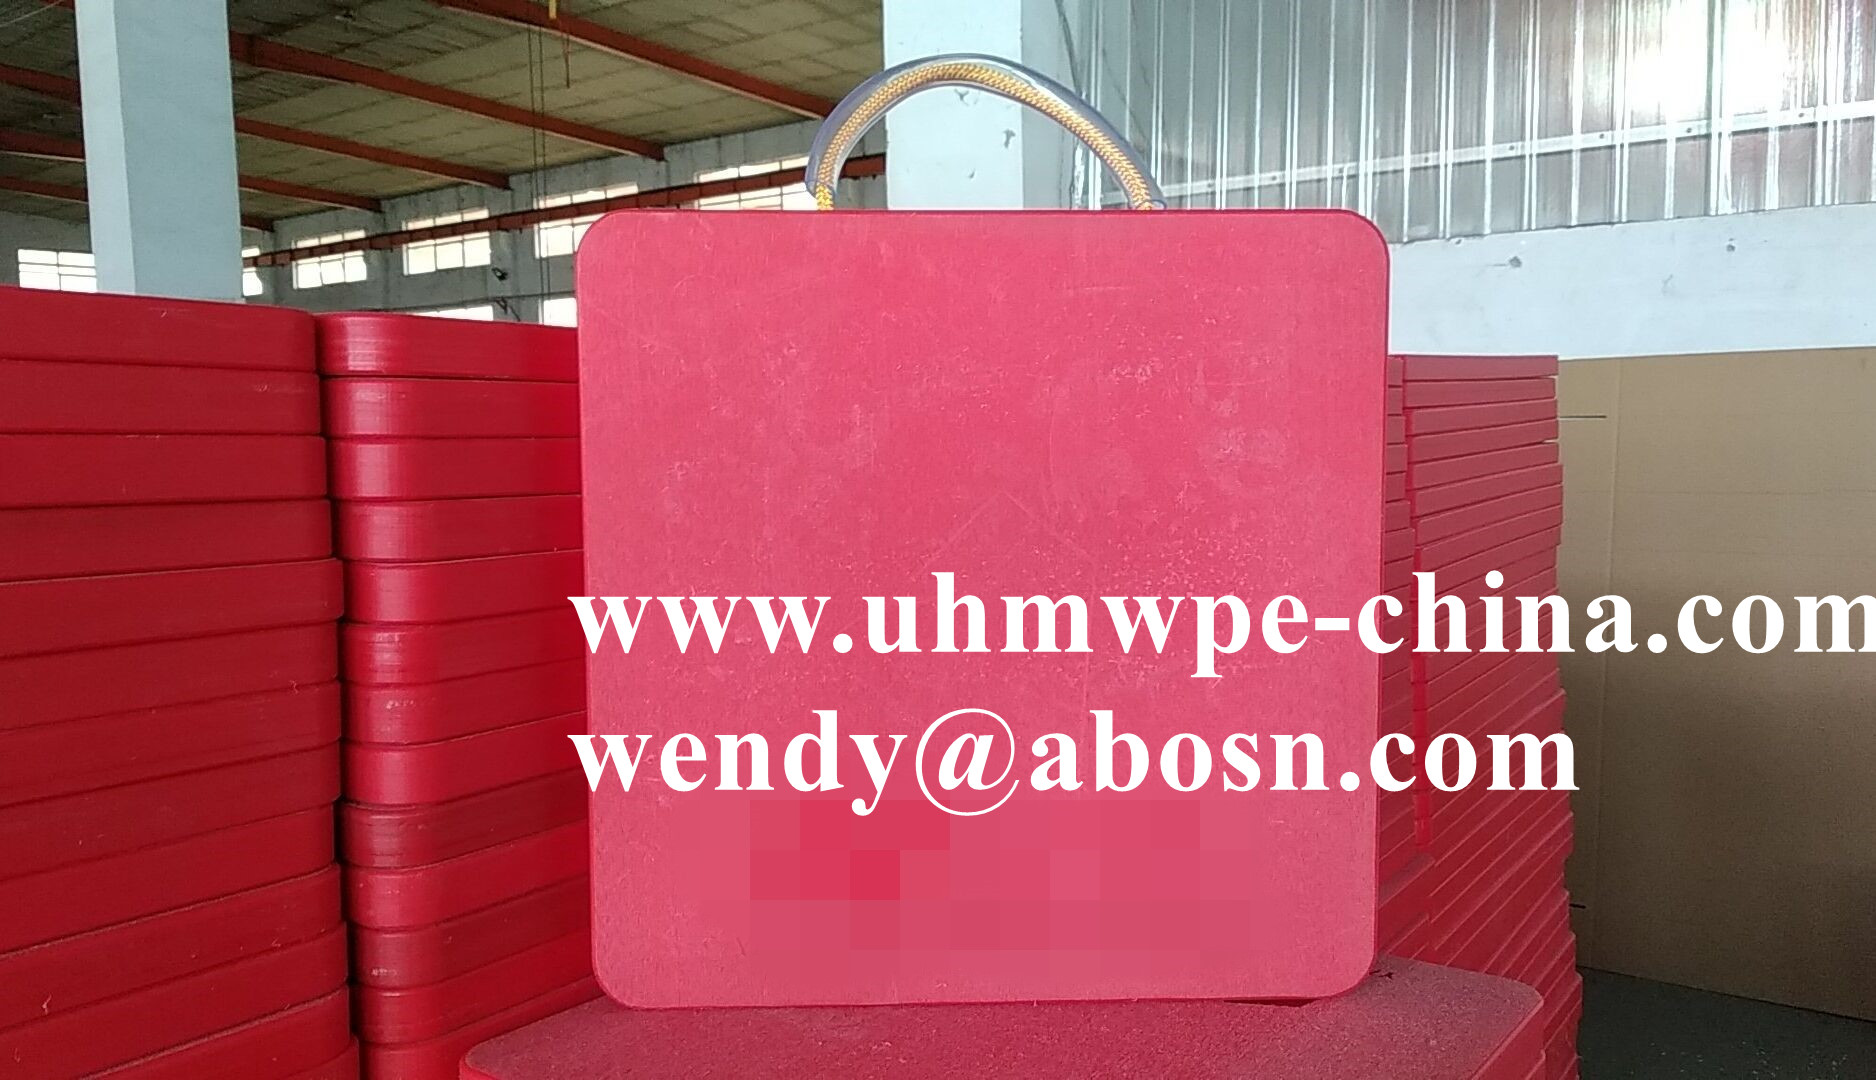 UHMWPE Outrigger Pads | Crane Pads | Plastic Cribbing